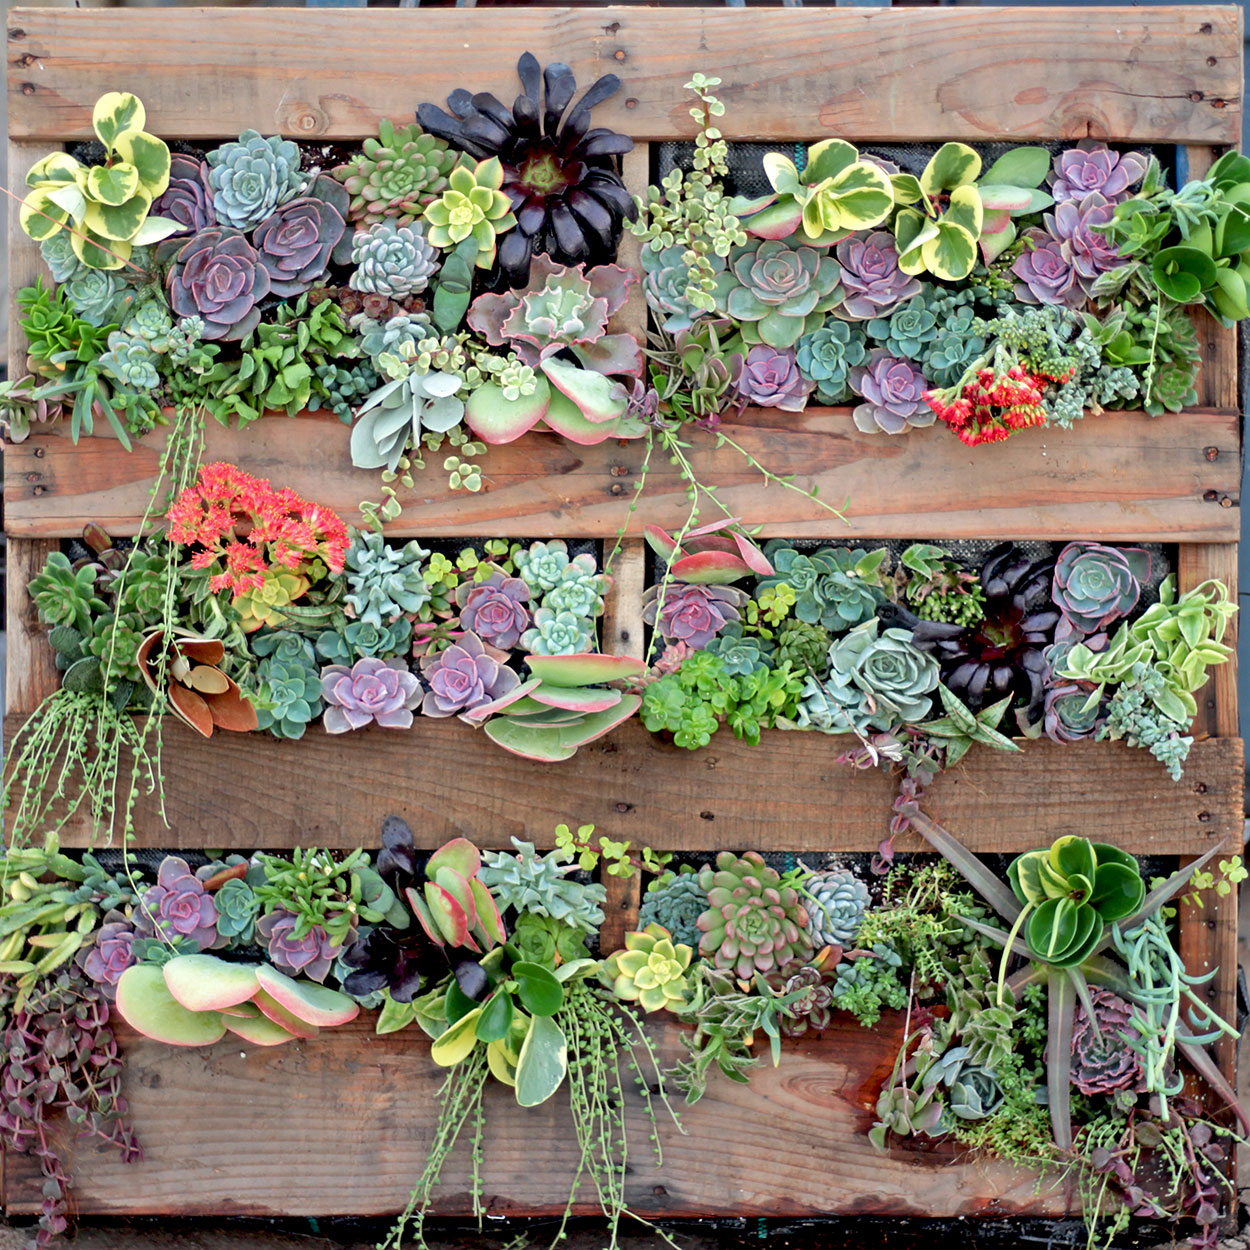 Attirant Week 1 Is With Ashley, Our Production Supervisor, Who Has Been With Us For  5 Years. Ashley Has Decided To Create A Living Wall Using An Old Pallet.